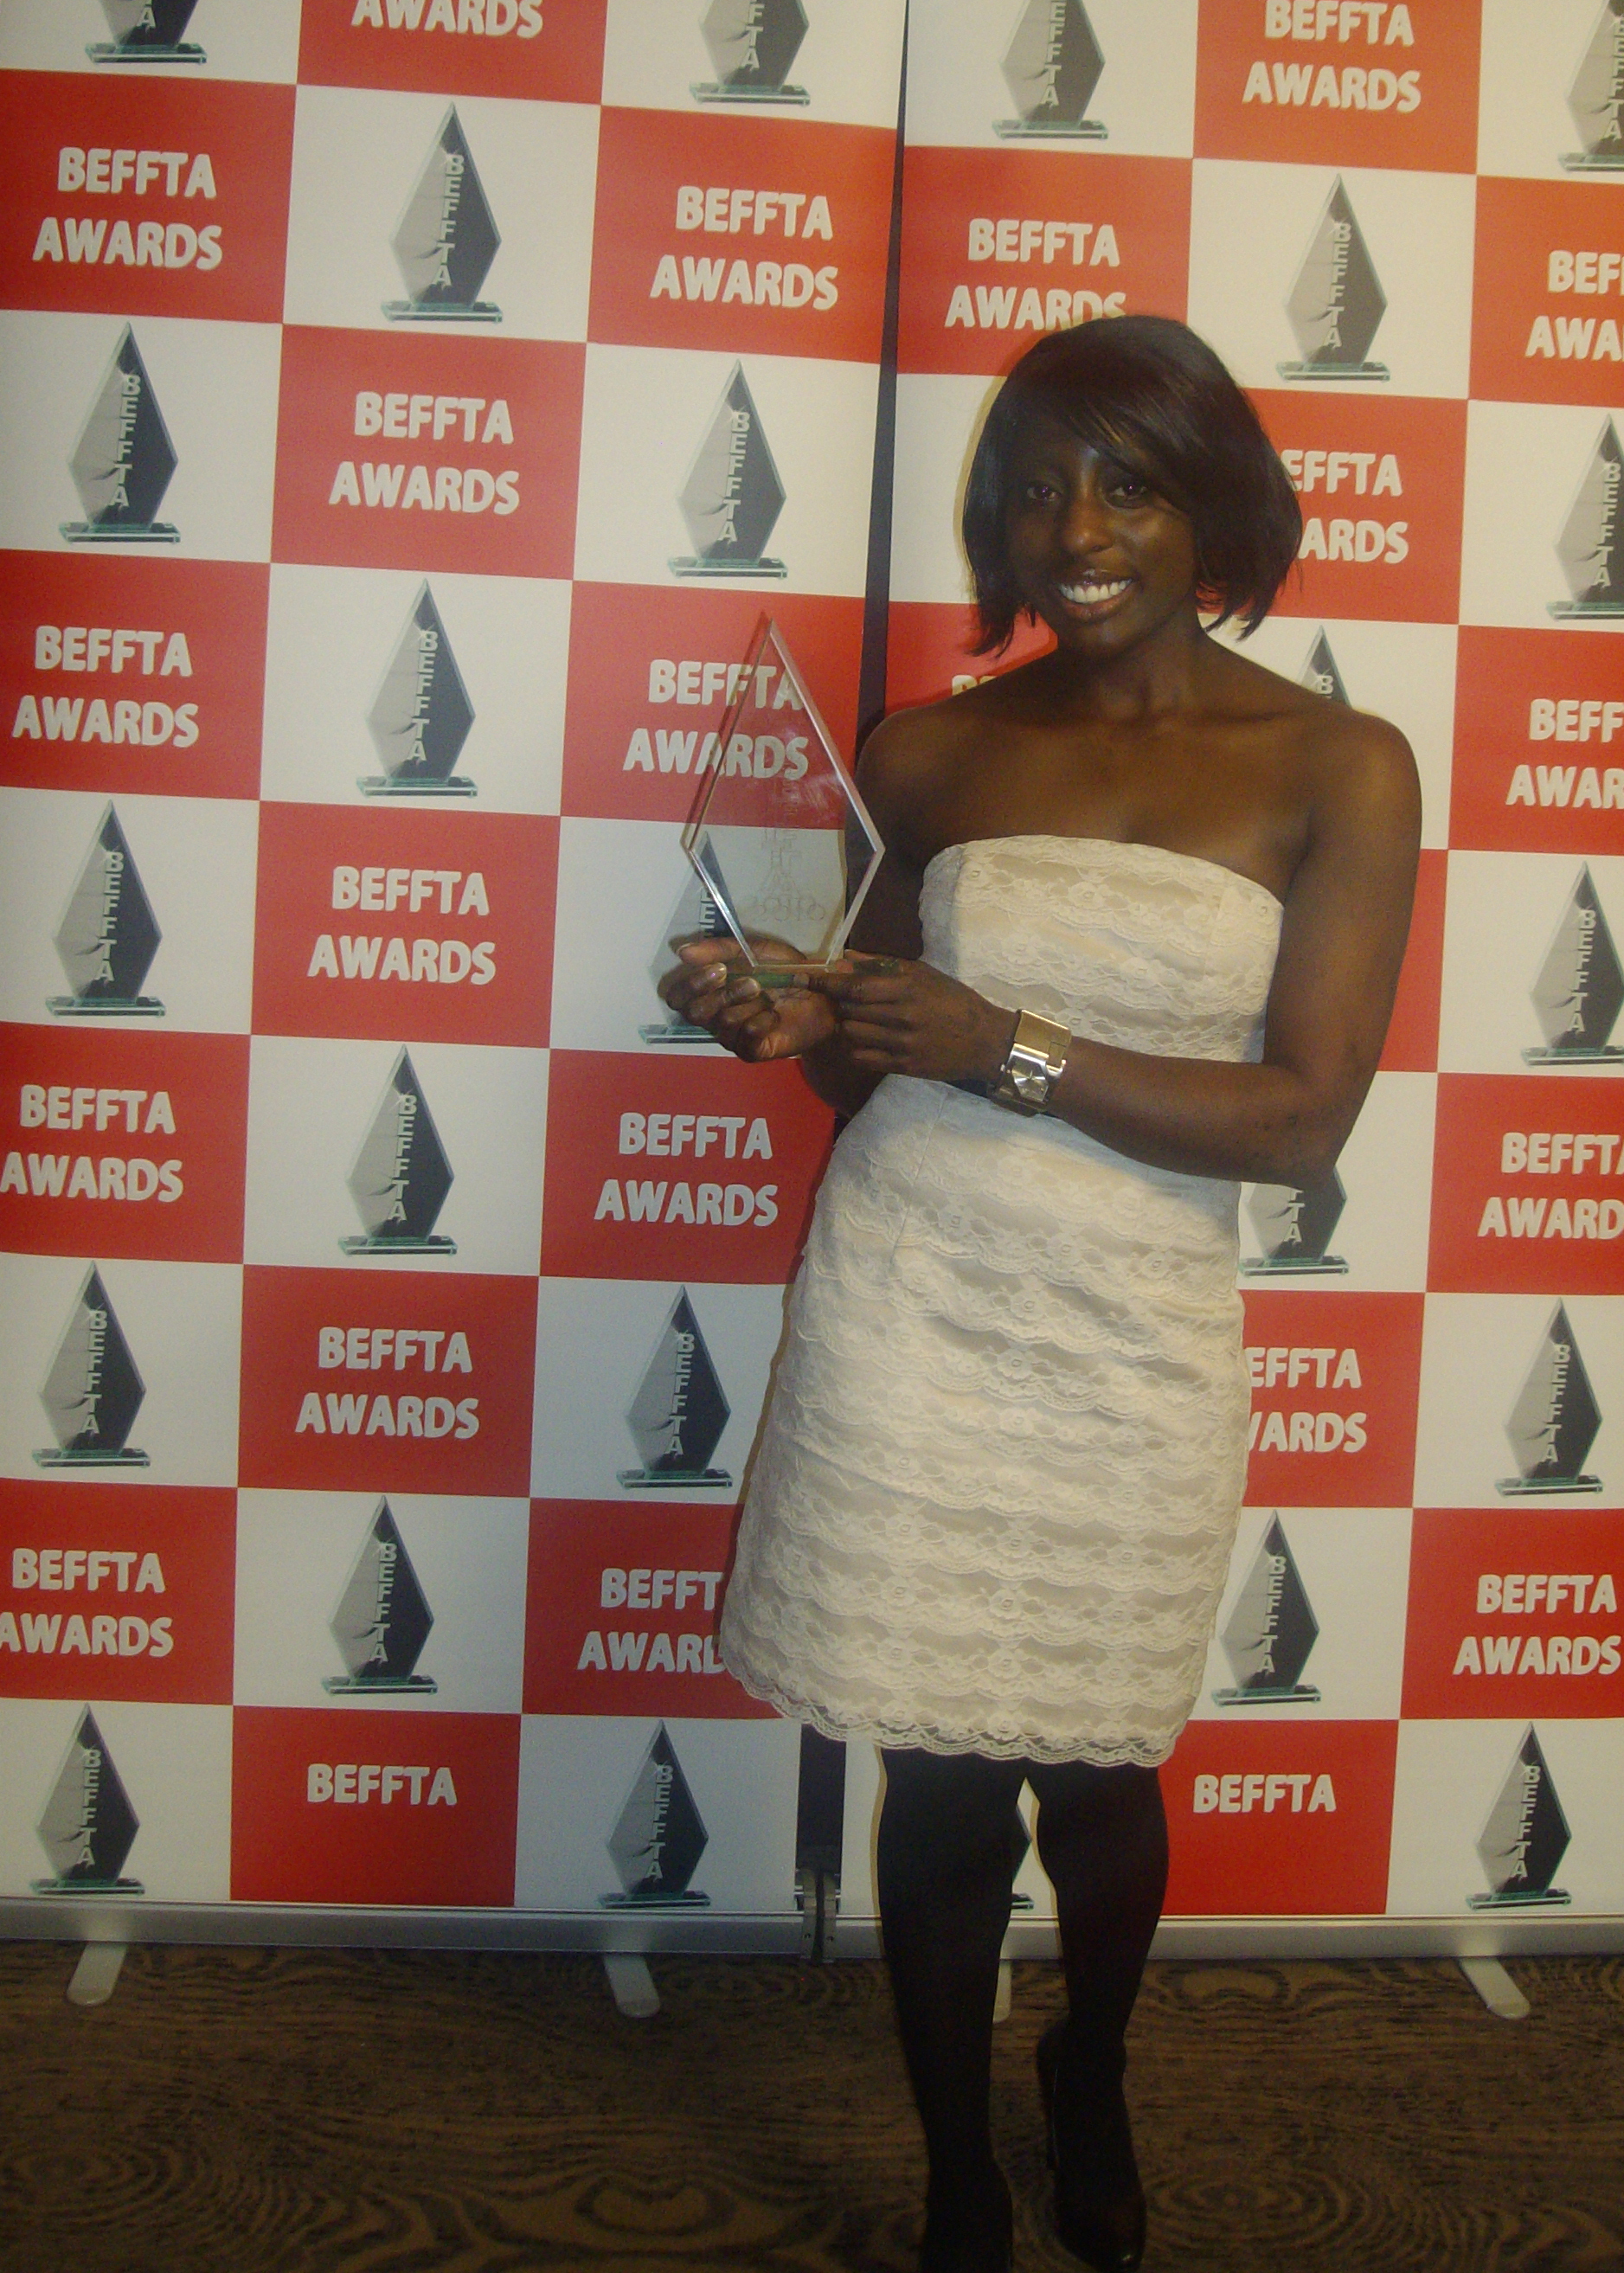 Candice McKenzie BEFFTA Awards